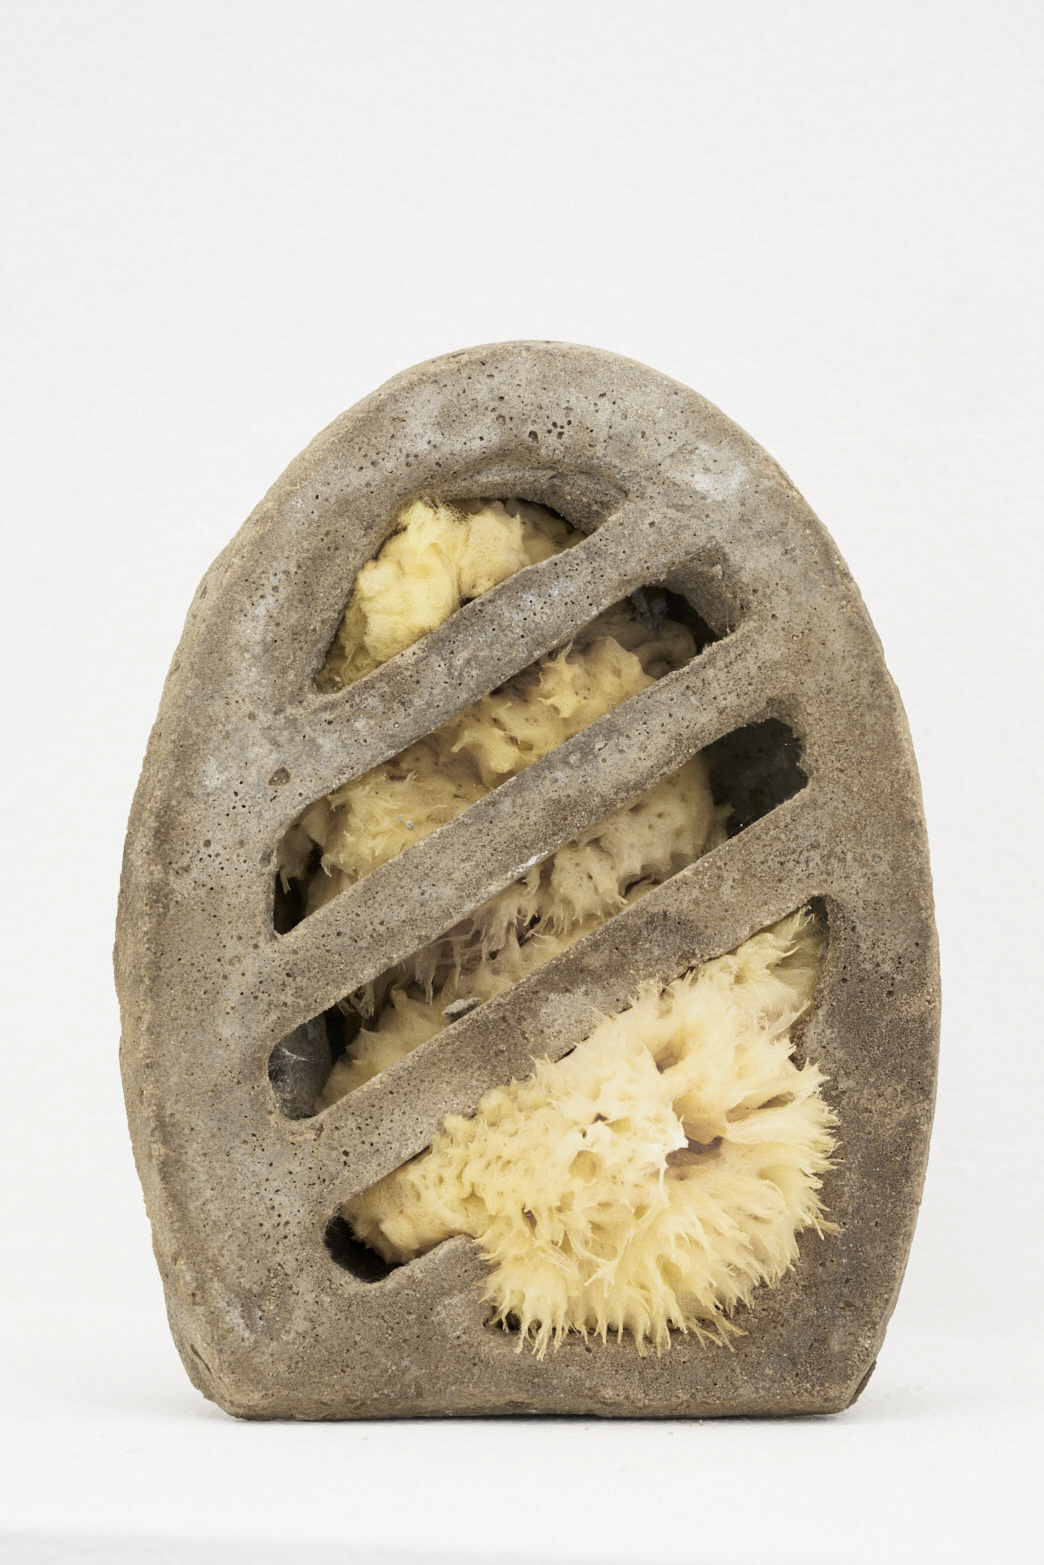 Victoria Adam, Wholemeal breeze (sponge, wine, vinegar), 2018, Cement, sponge, vinegar